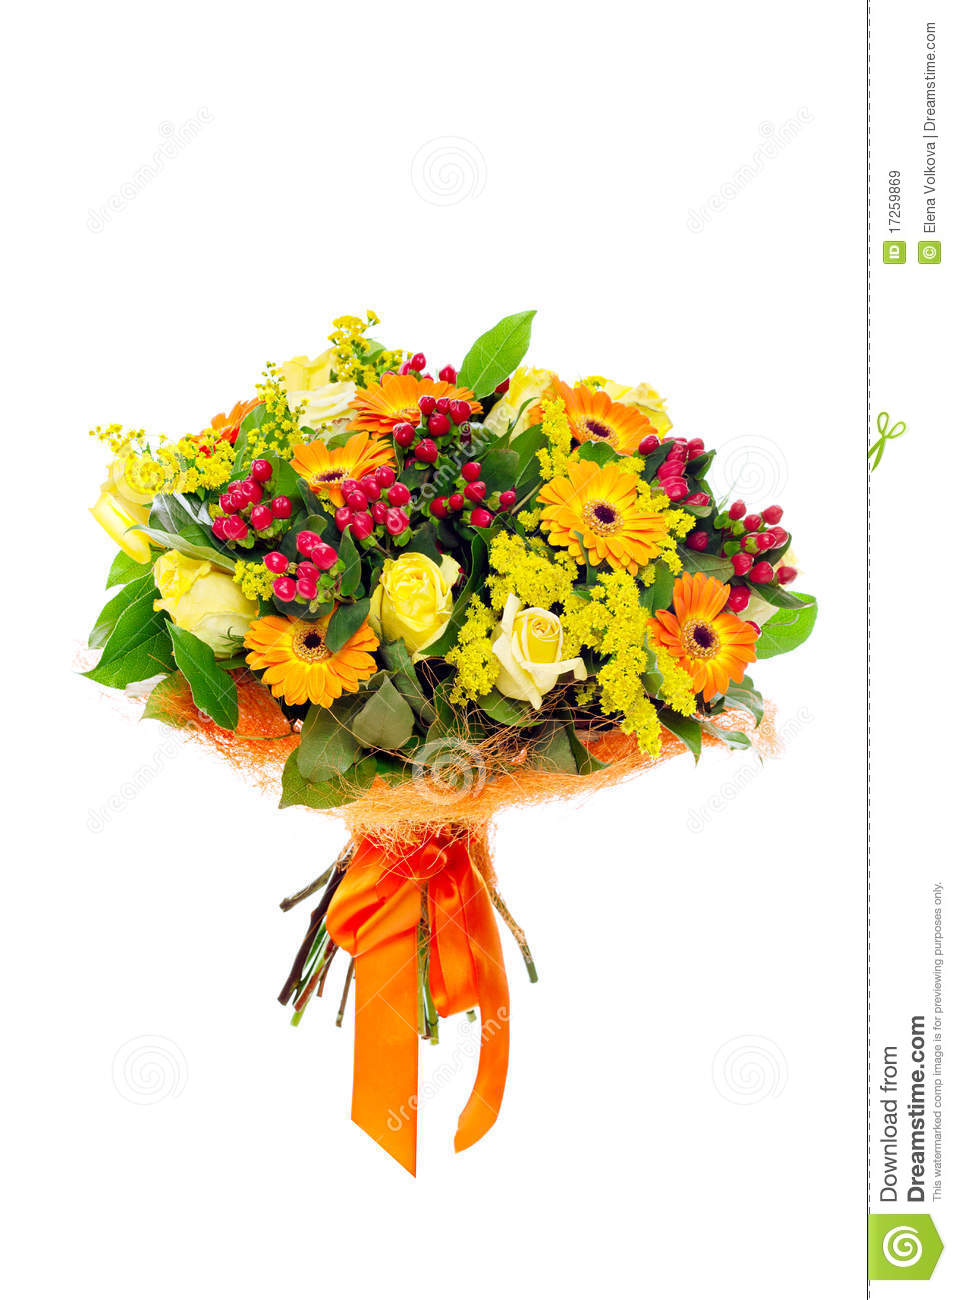 Bunch flowers images free clip royalty free stock A Bunch Of Flowers Royalty Free Stock Images - Image: 17259869 clip royalty free stock